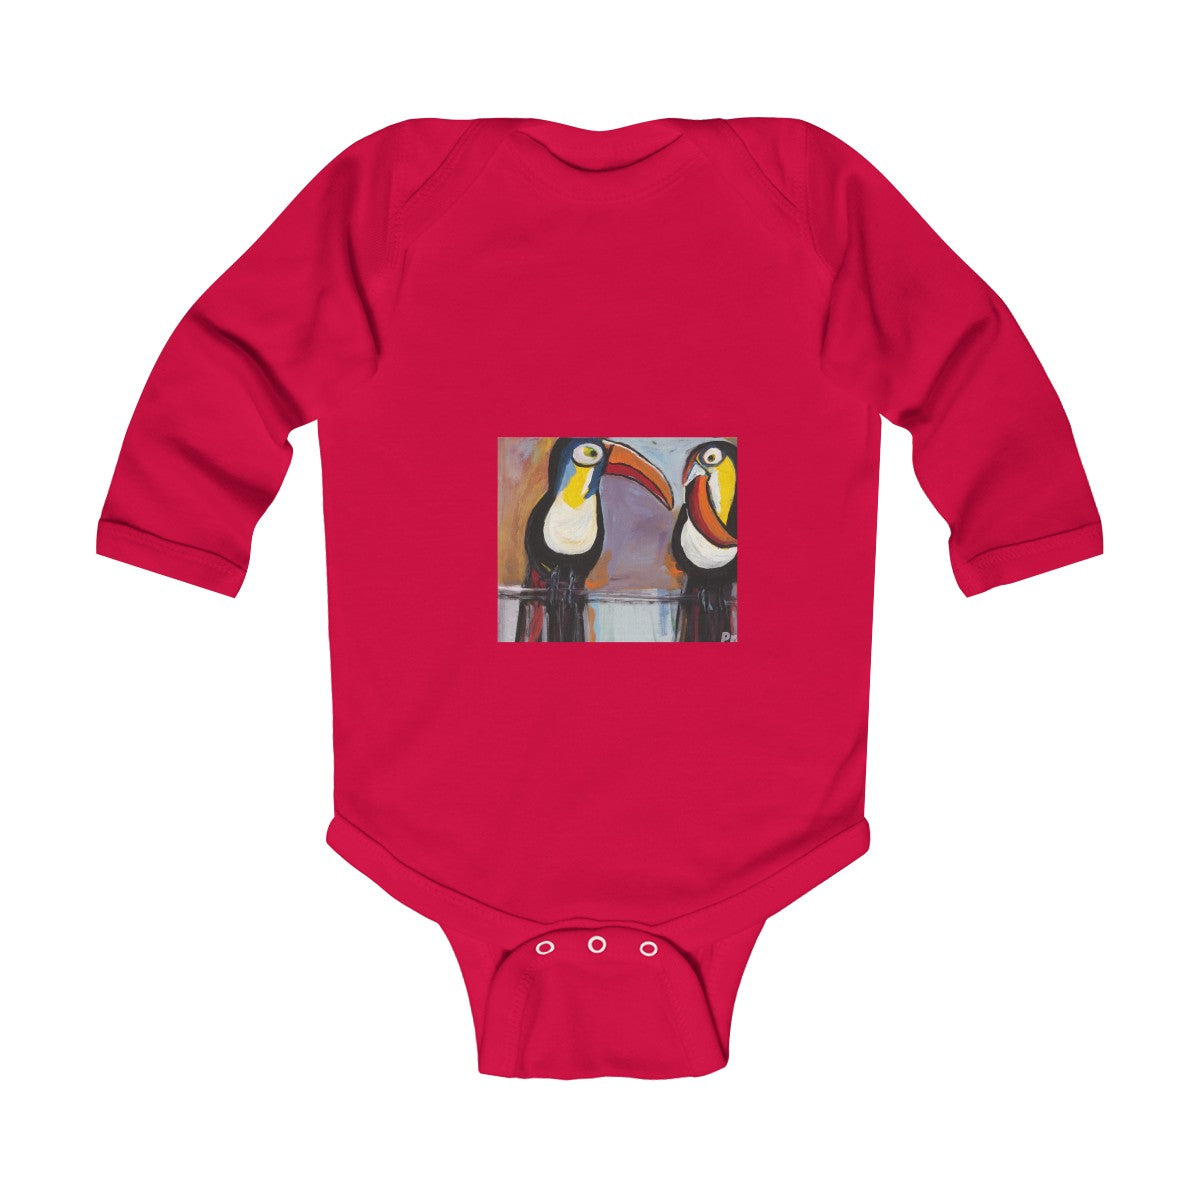 TOUCAN  Infant Long Sleeve Bodysuit  NB - 18 M